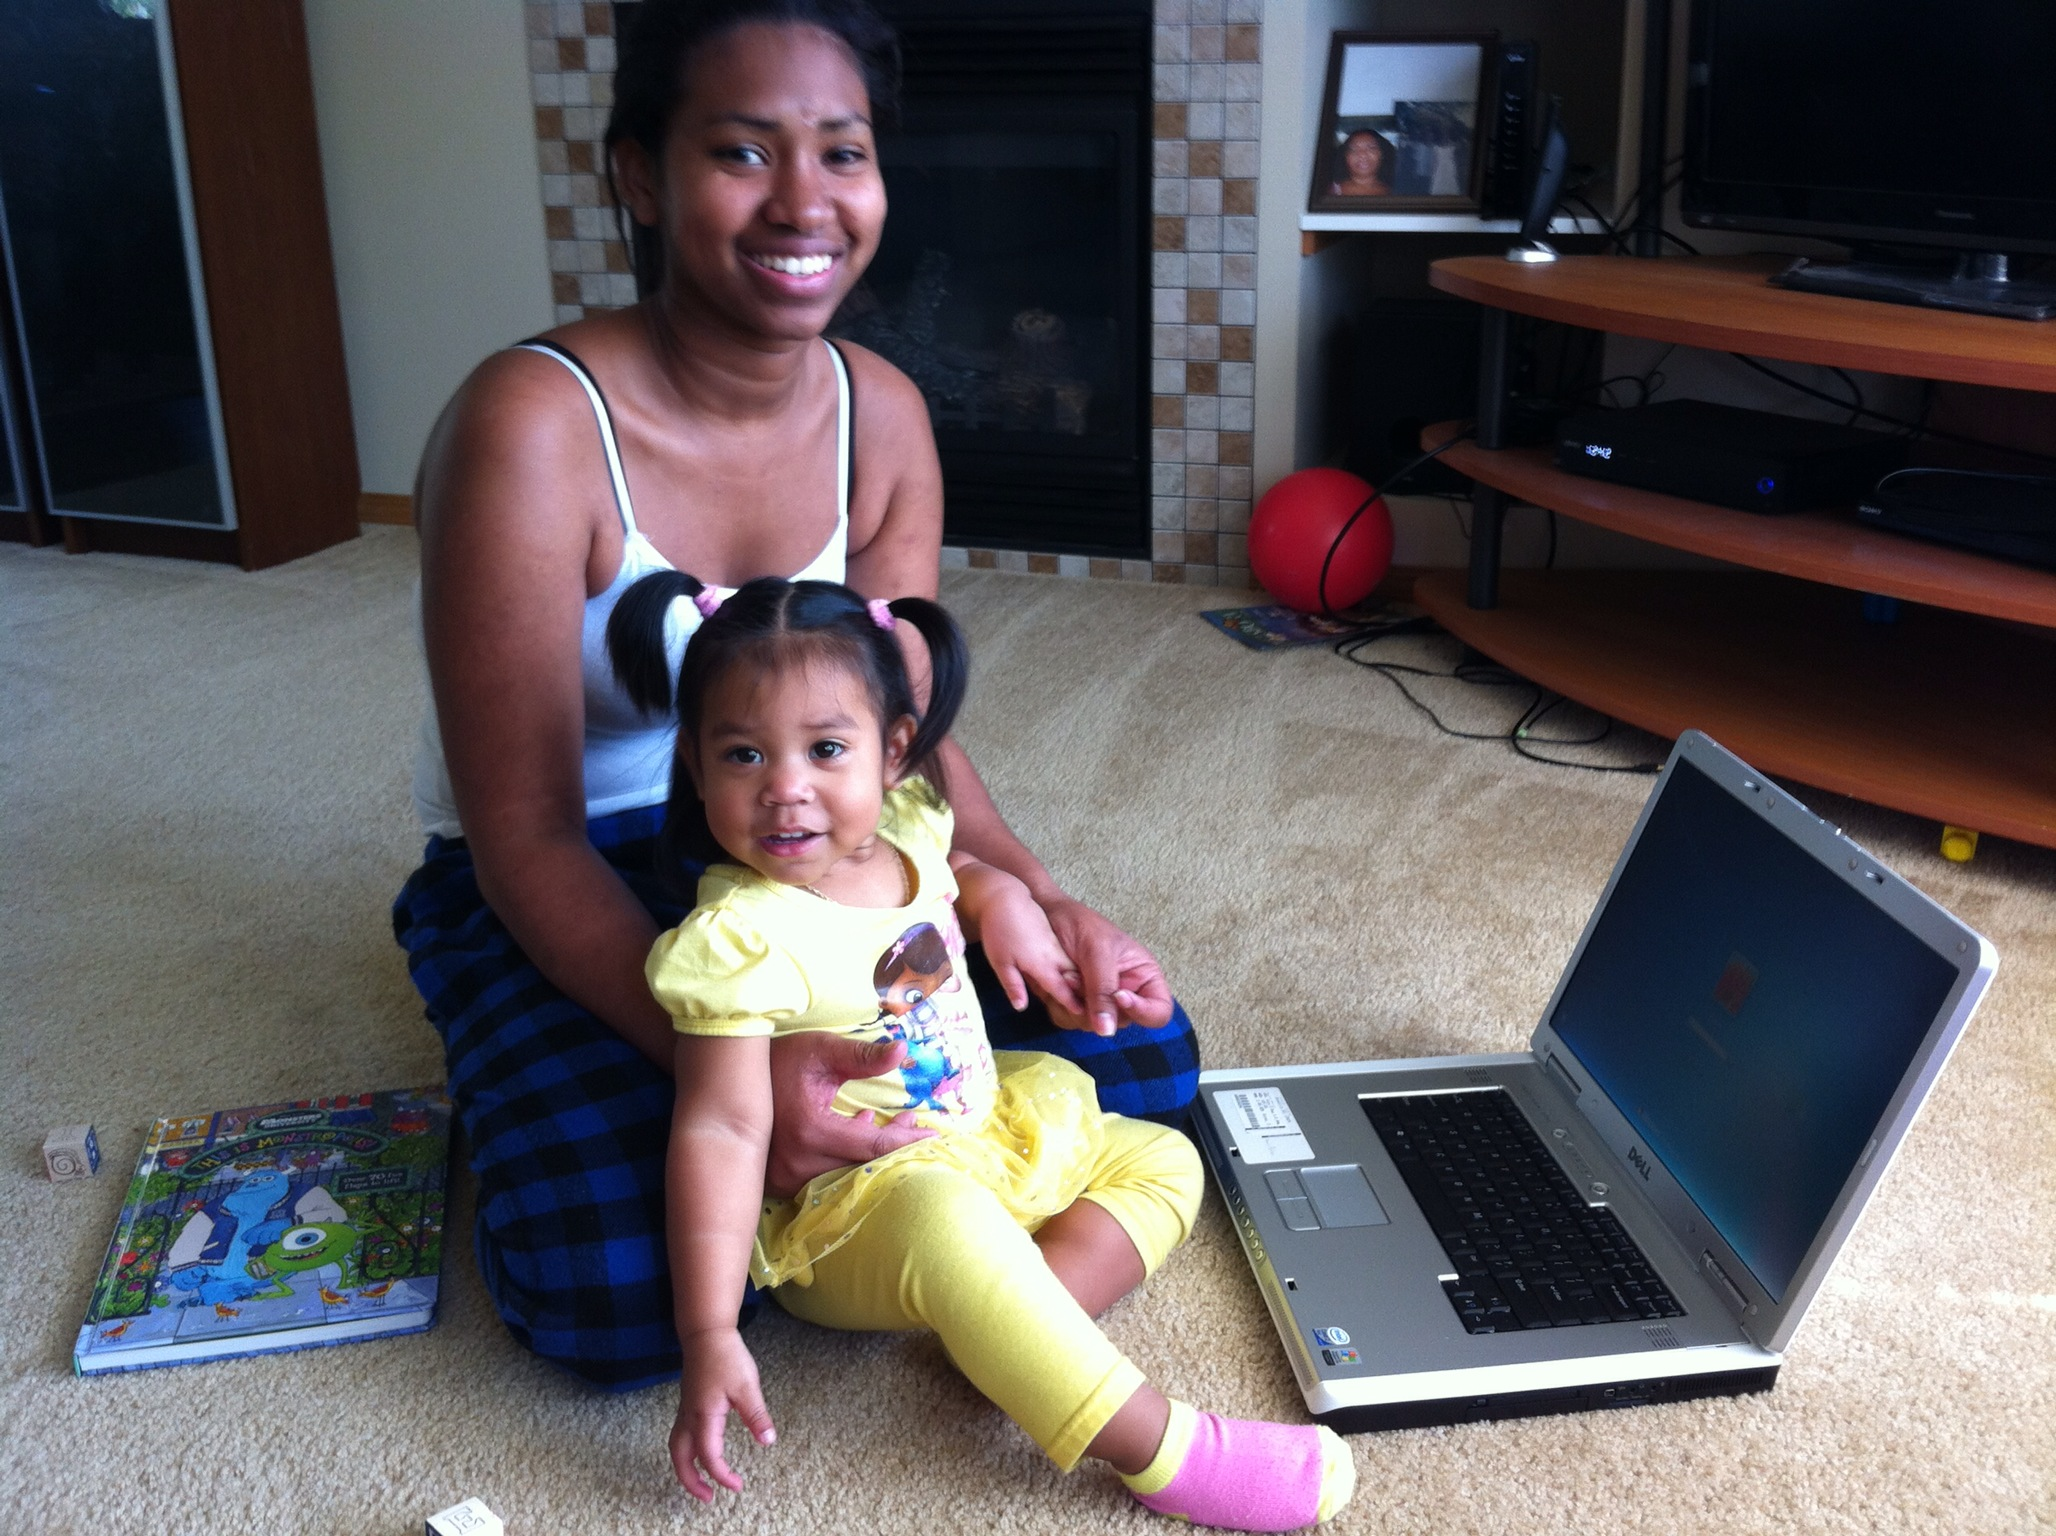 InterConnection supports Healthy Start with laptops for moms